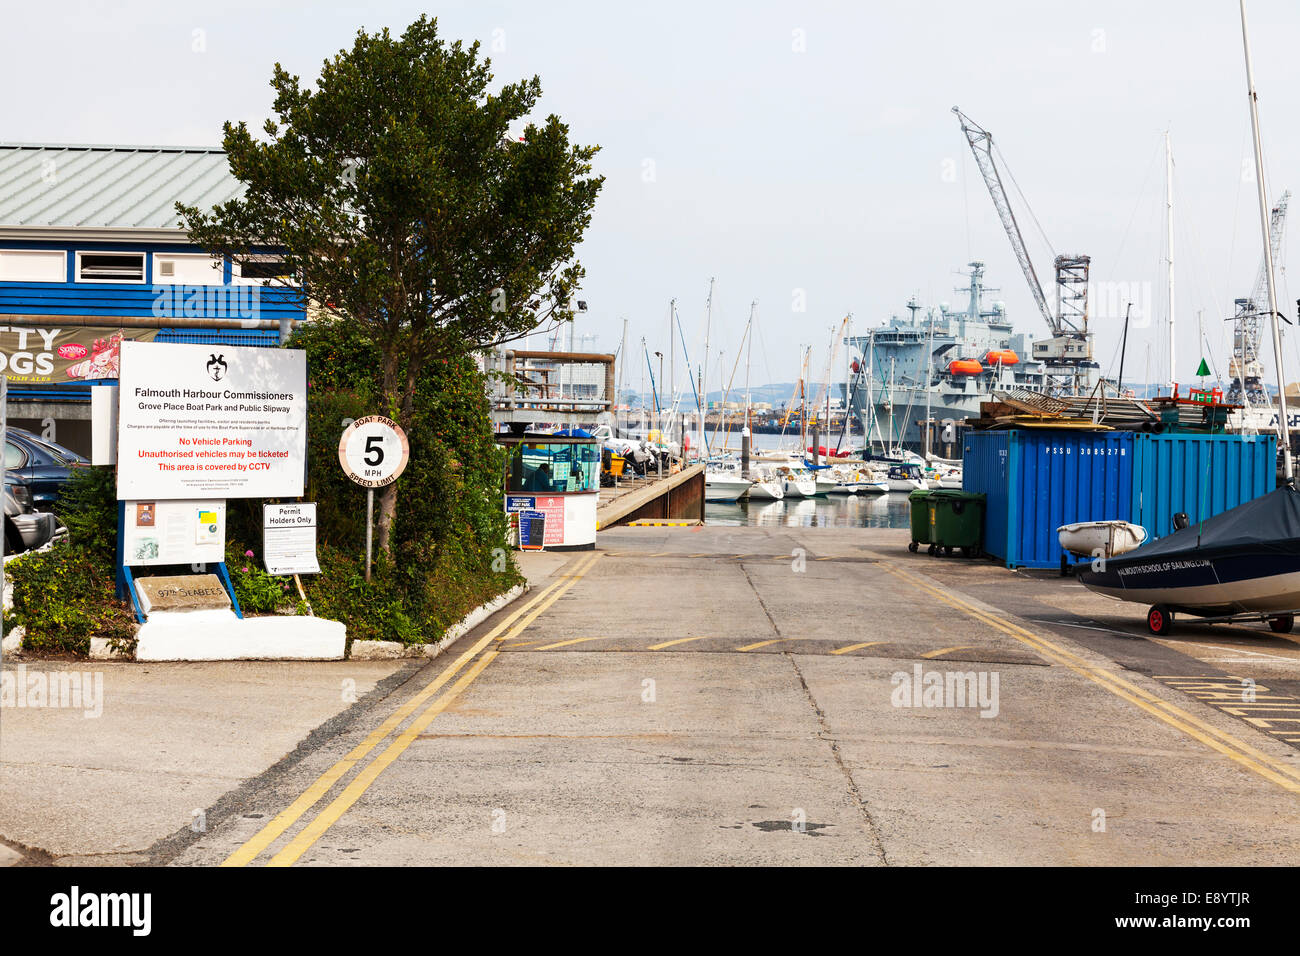 Falmouth harbour commissioners office harbor public slipway Cornwall Cornish UK England access Stock Photo